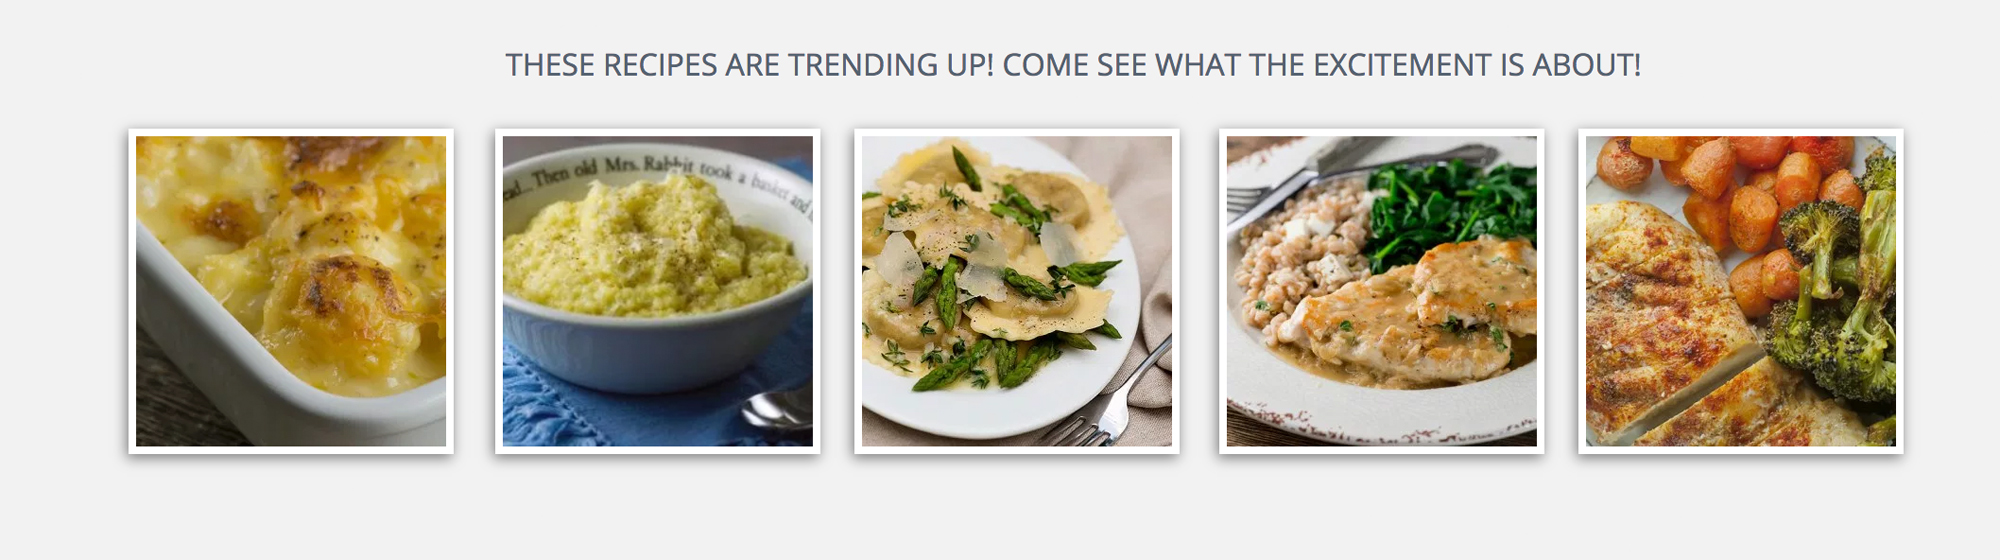 trending recipes